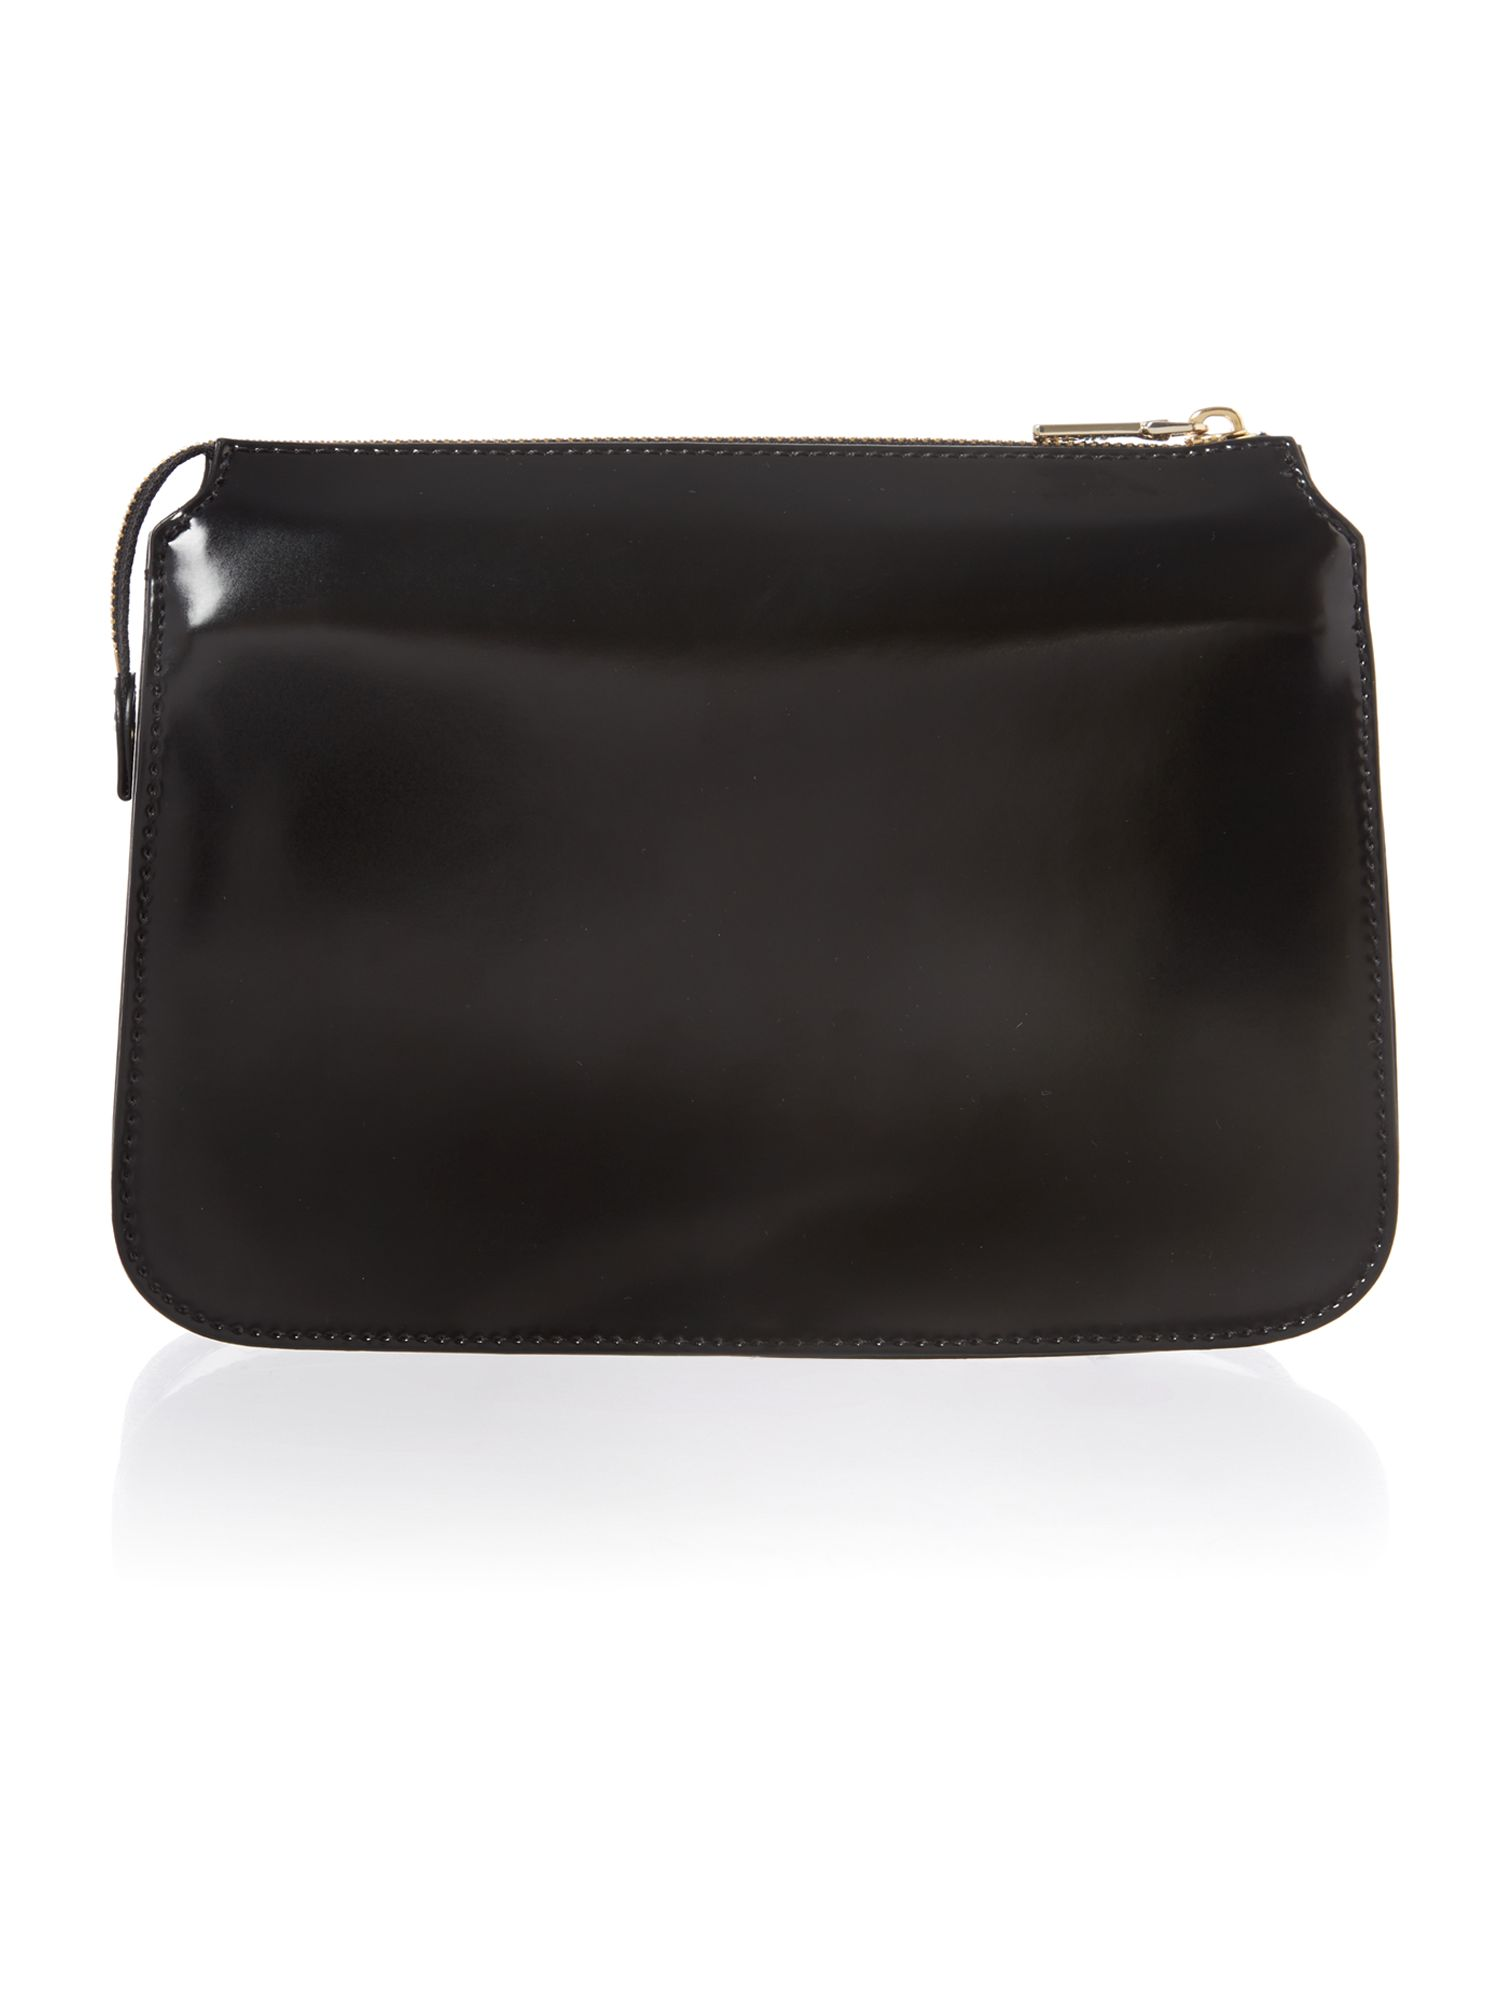 Hudson black crossbody bag